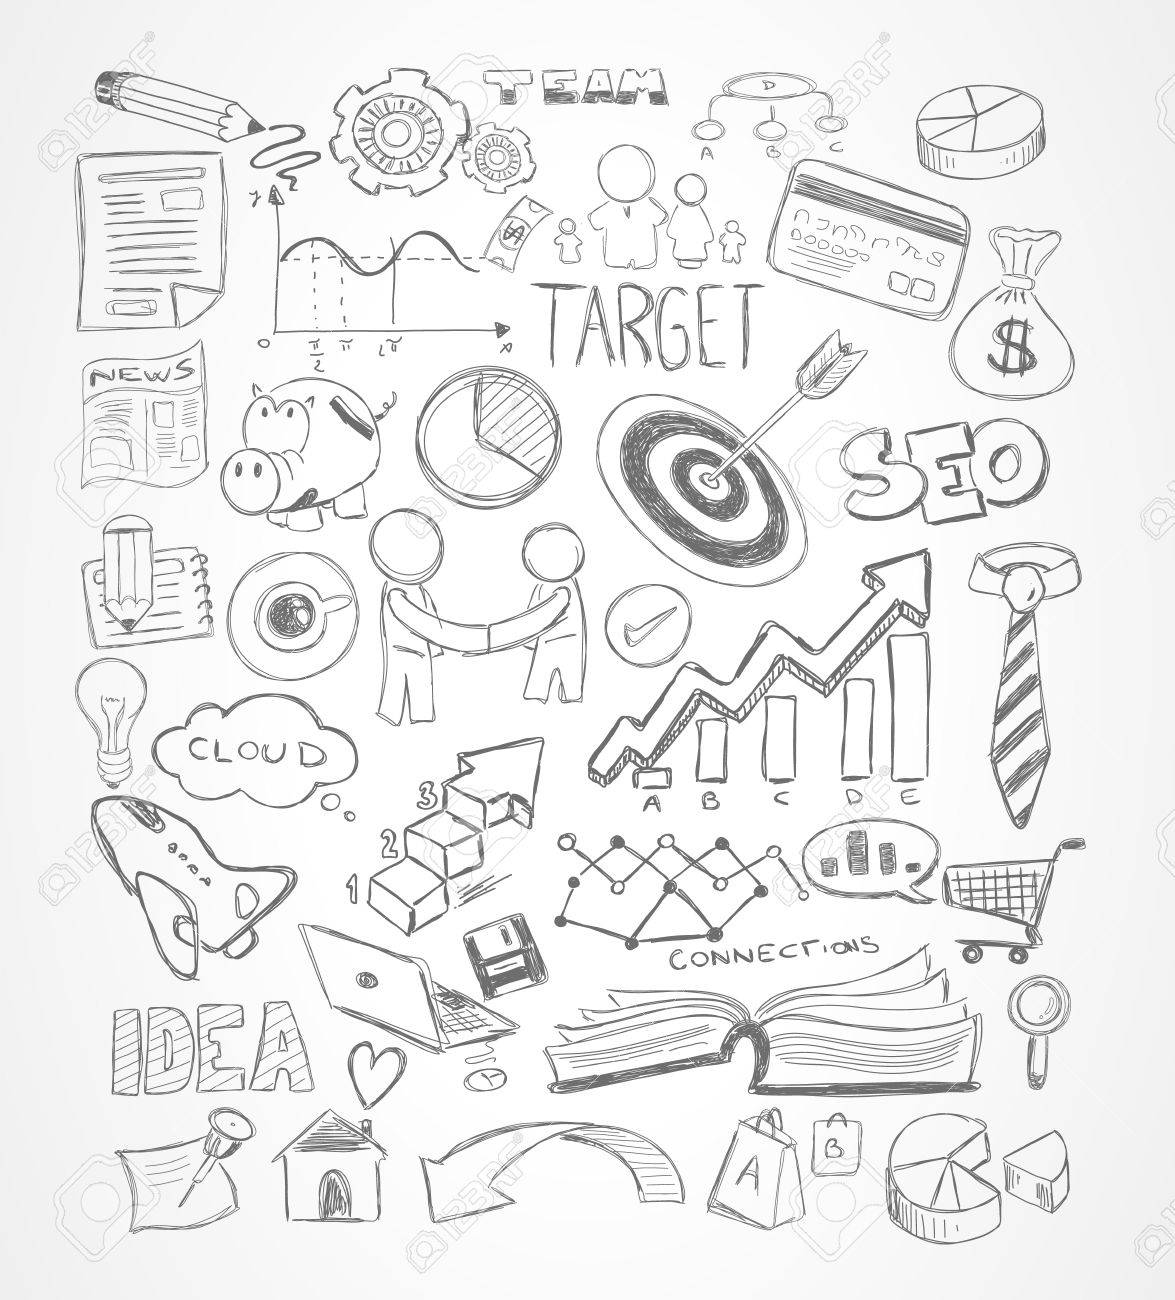 47969228 Modern Abstract background with hand drawn doodle sketches for Flyer Designs Brochure layouts Busine Stock Vector marketing ad templates,ad free download card designs on marketing template powerpoint